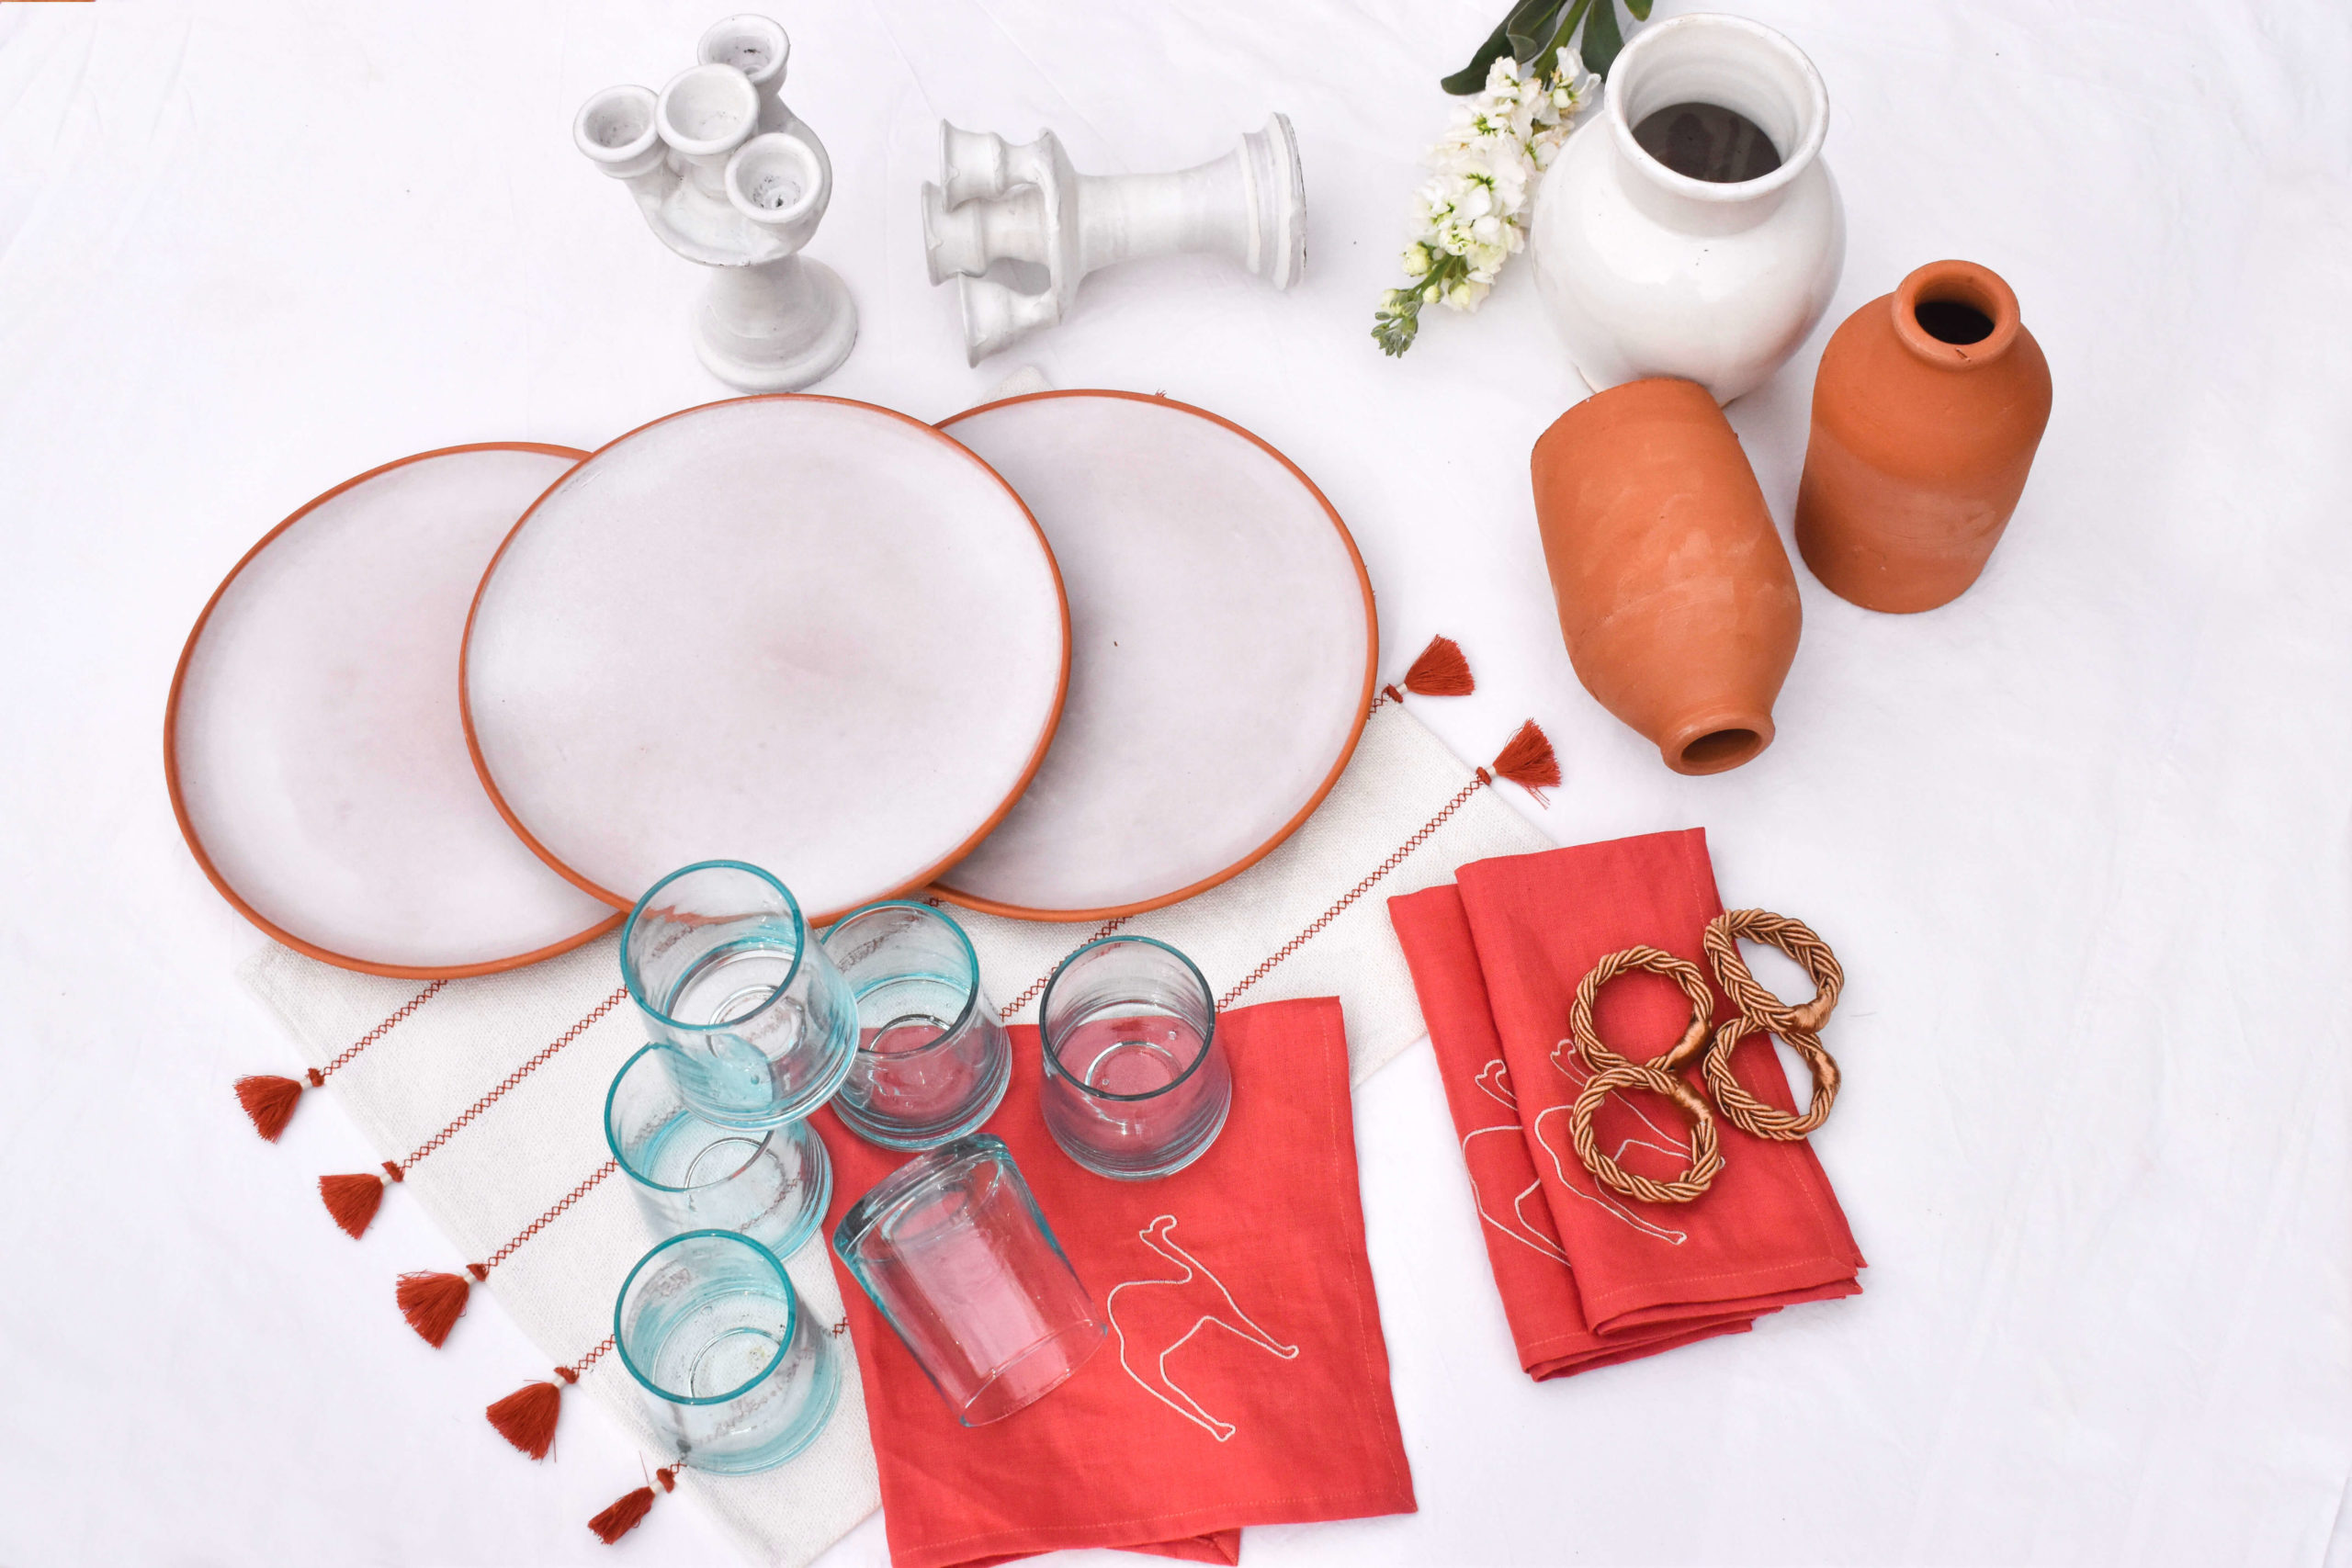 Handmade terracota table setting dinnerware homeware package